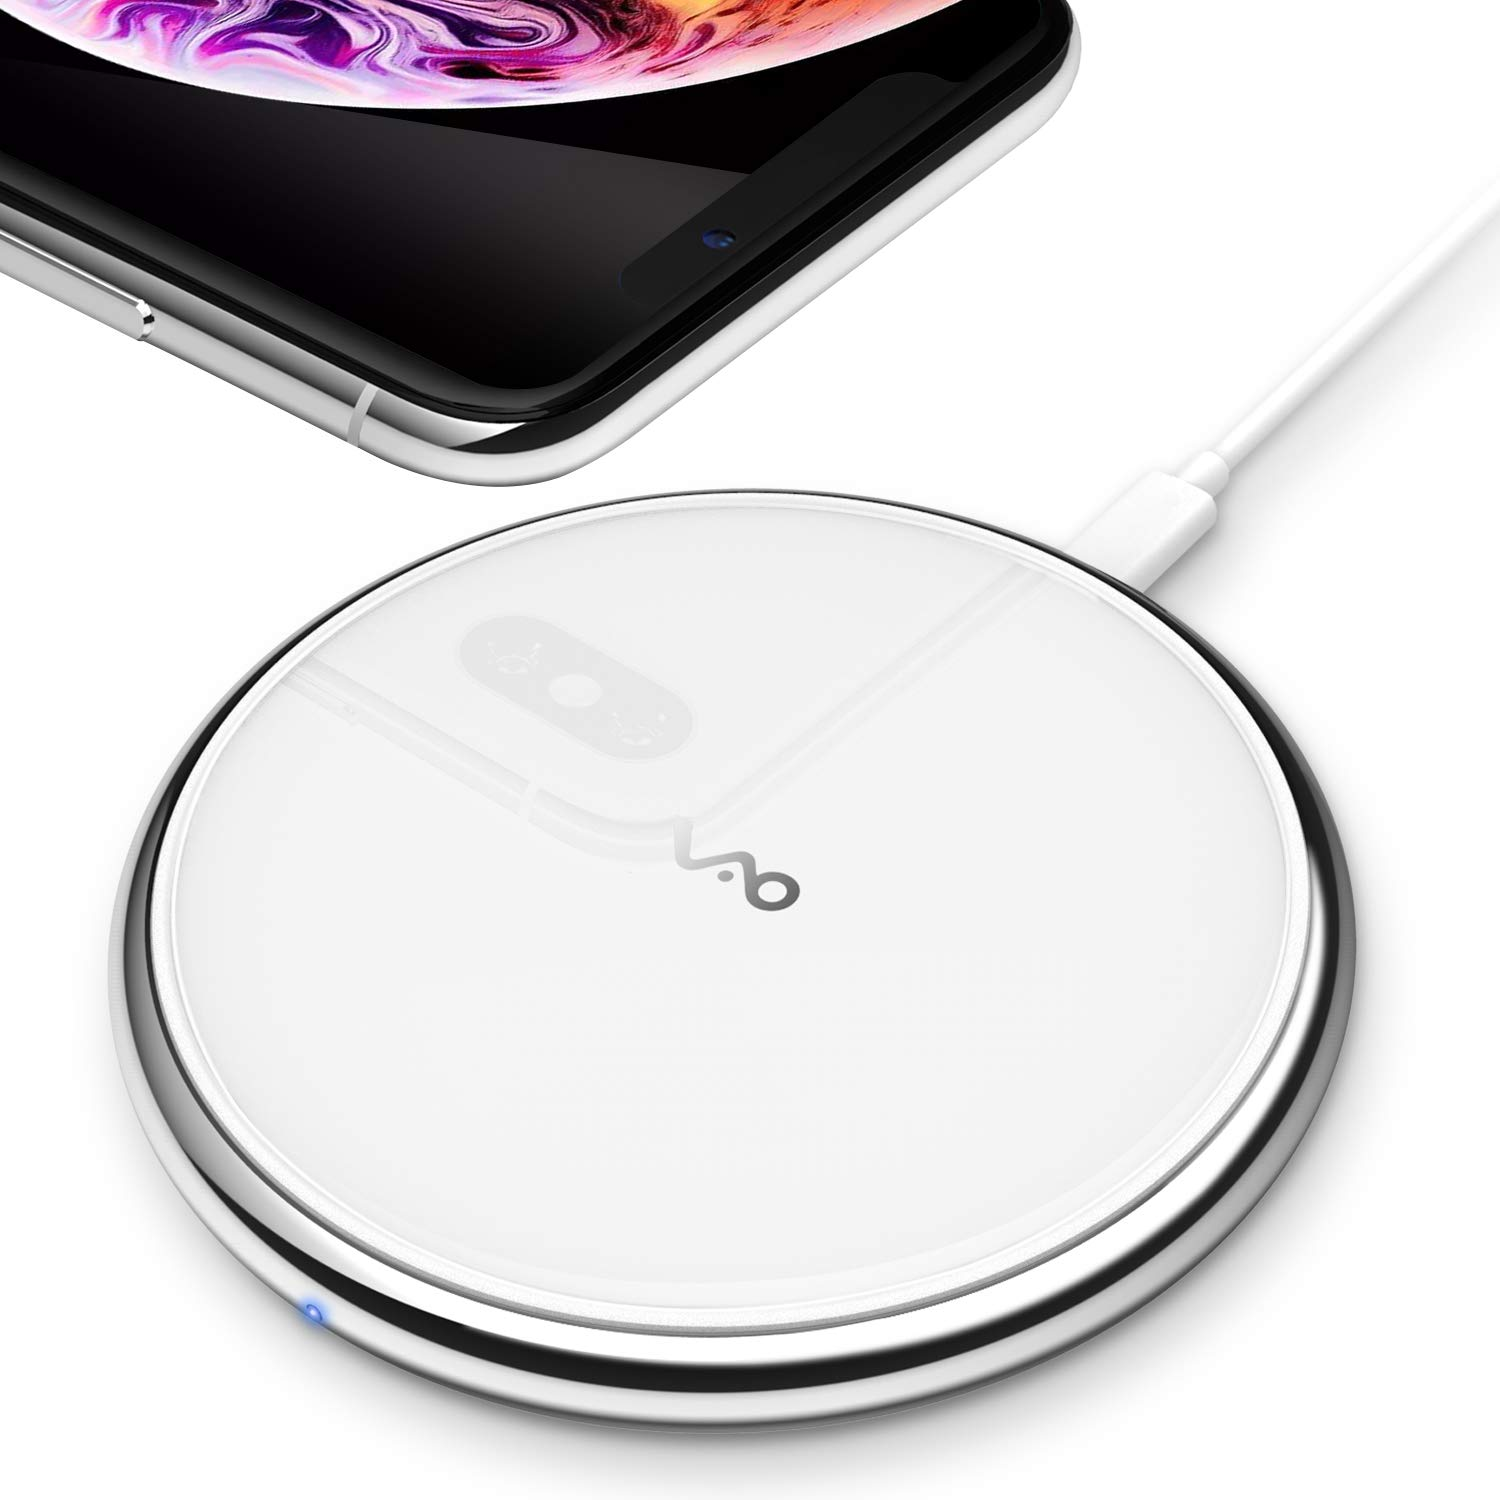 sports shoes a2bdc d6319 Vebach Dubhe1 Wireless Charger, Qi Certified Fast Wireless Charging Pad  Compatible with iPhone Xs/XS Max/XR, 7.5W for iPhone X/8/8Plus, 10W for ...